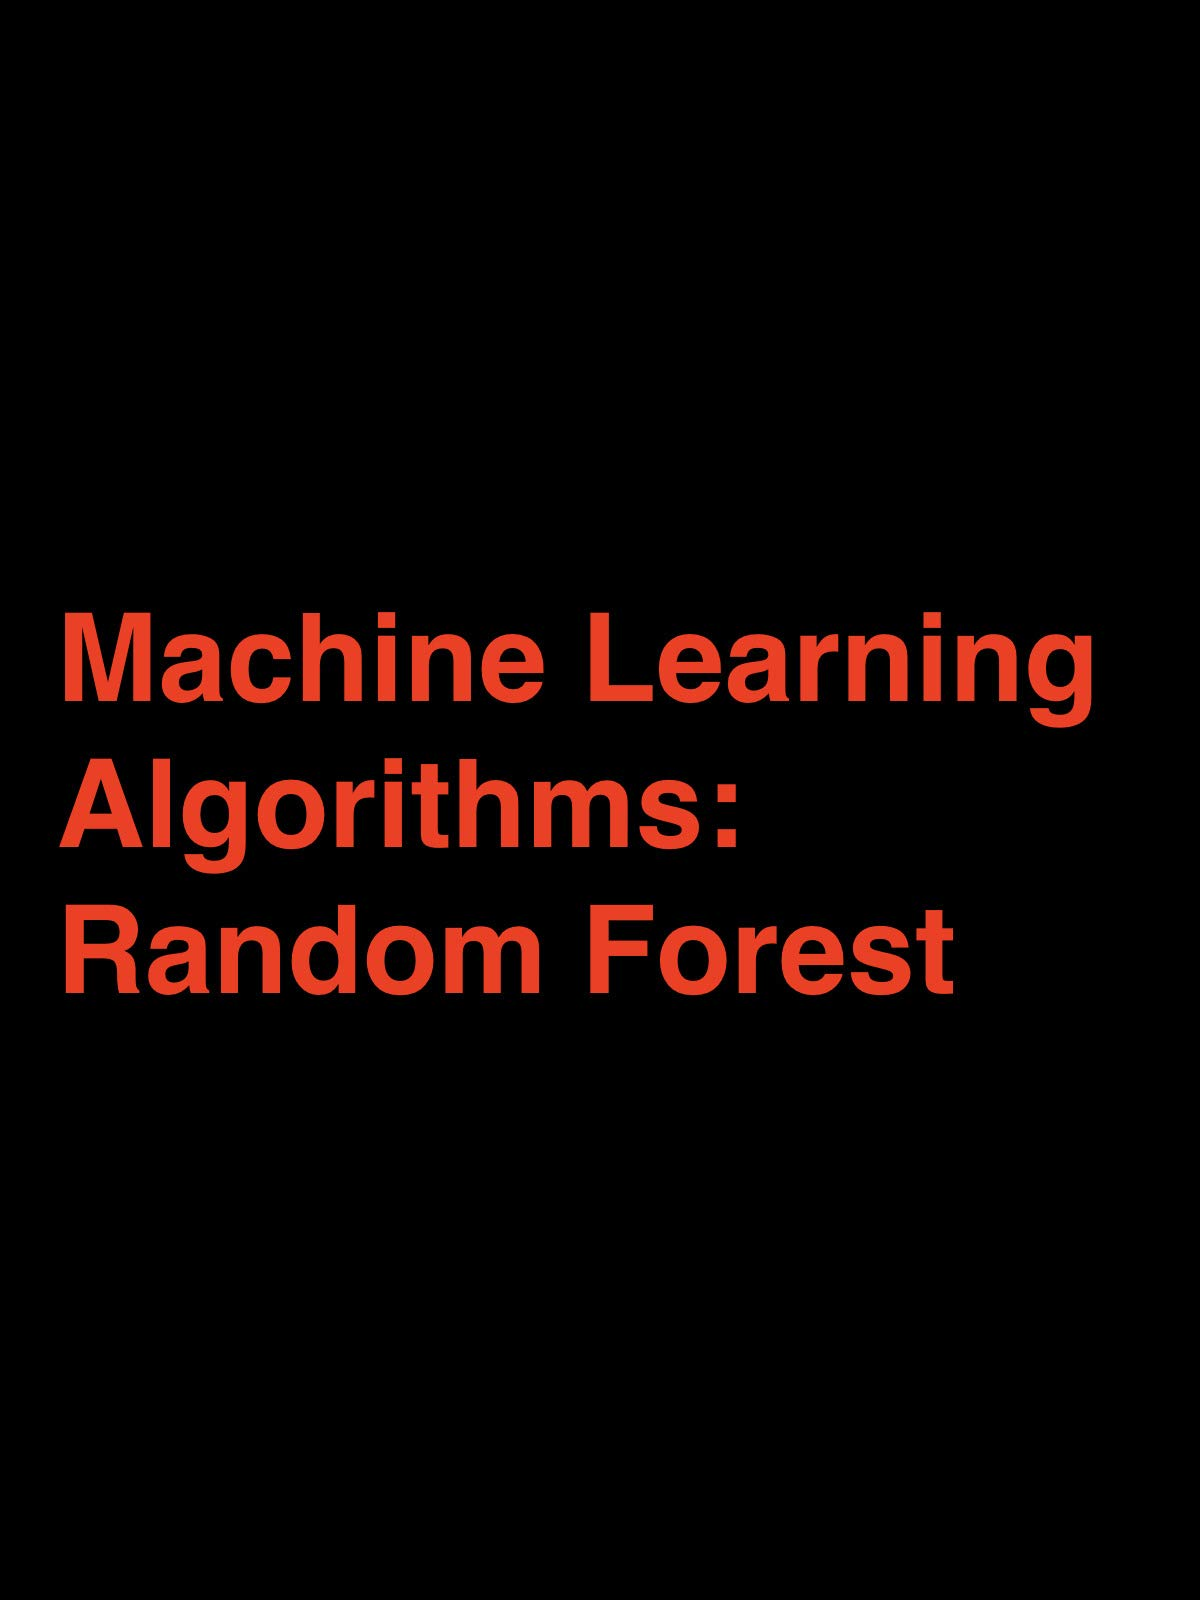 Machine Learning Algorithms: Random Forest